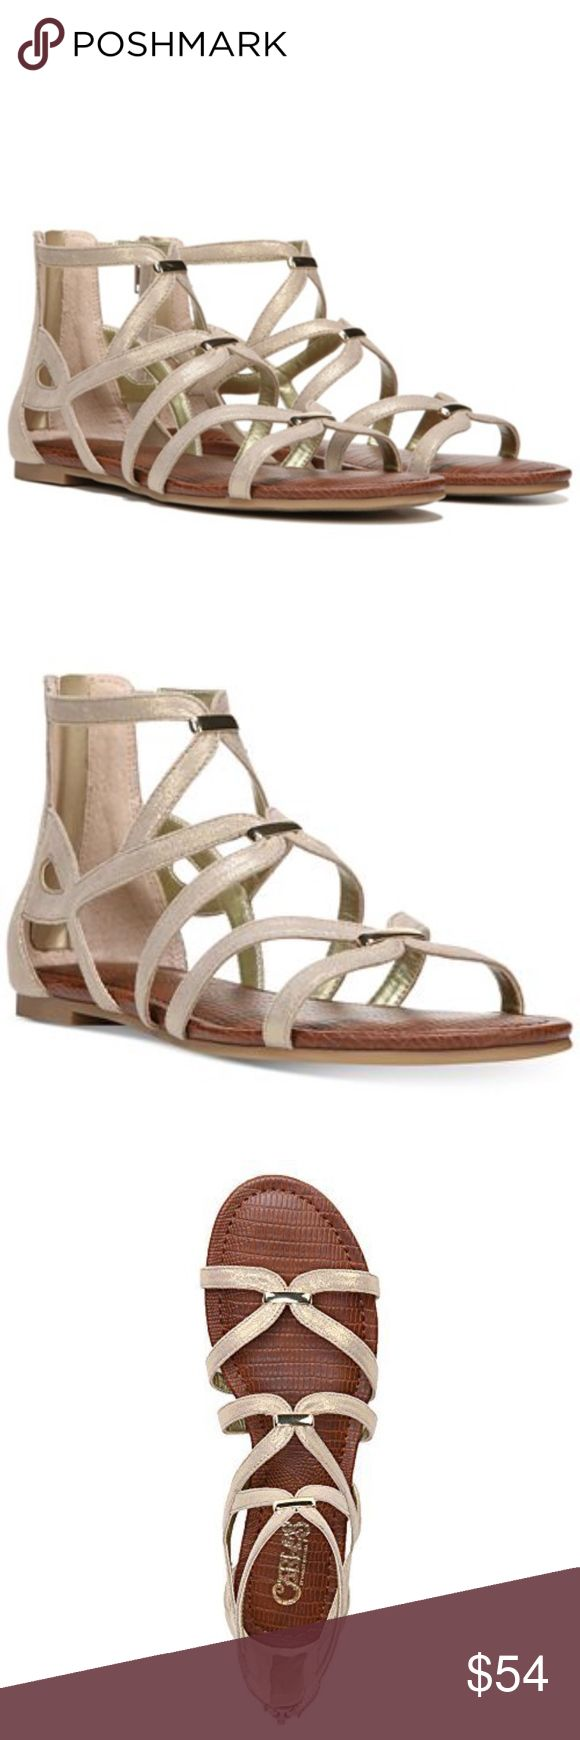 """CARLOS by Carlos Santana - Emma (Kork) NEW IN BOX  Size: 6.5 Color: Kork  DETAILS: Round open-toe strappy gladiator sandals Zipper closure at back; metallic hardware at straps 1/4"""" heel Manmade upper; manmade sole Imported Carlos Santana Shoes Sandals"""